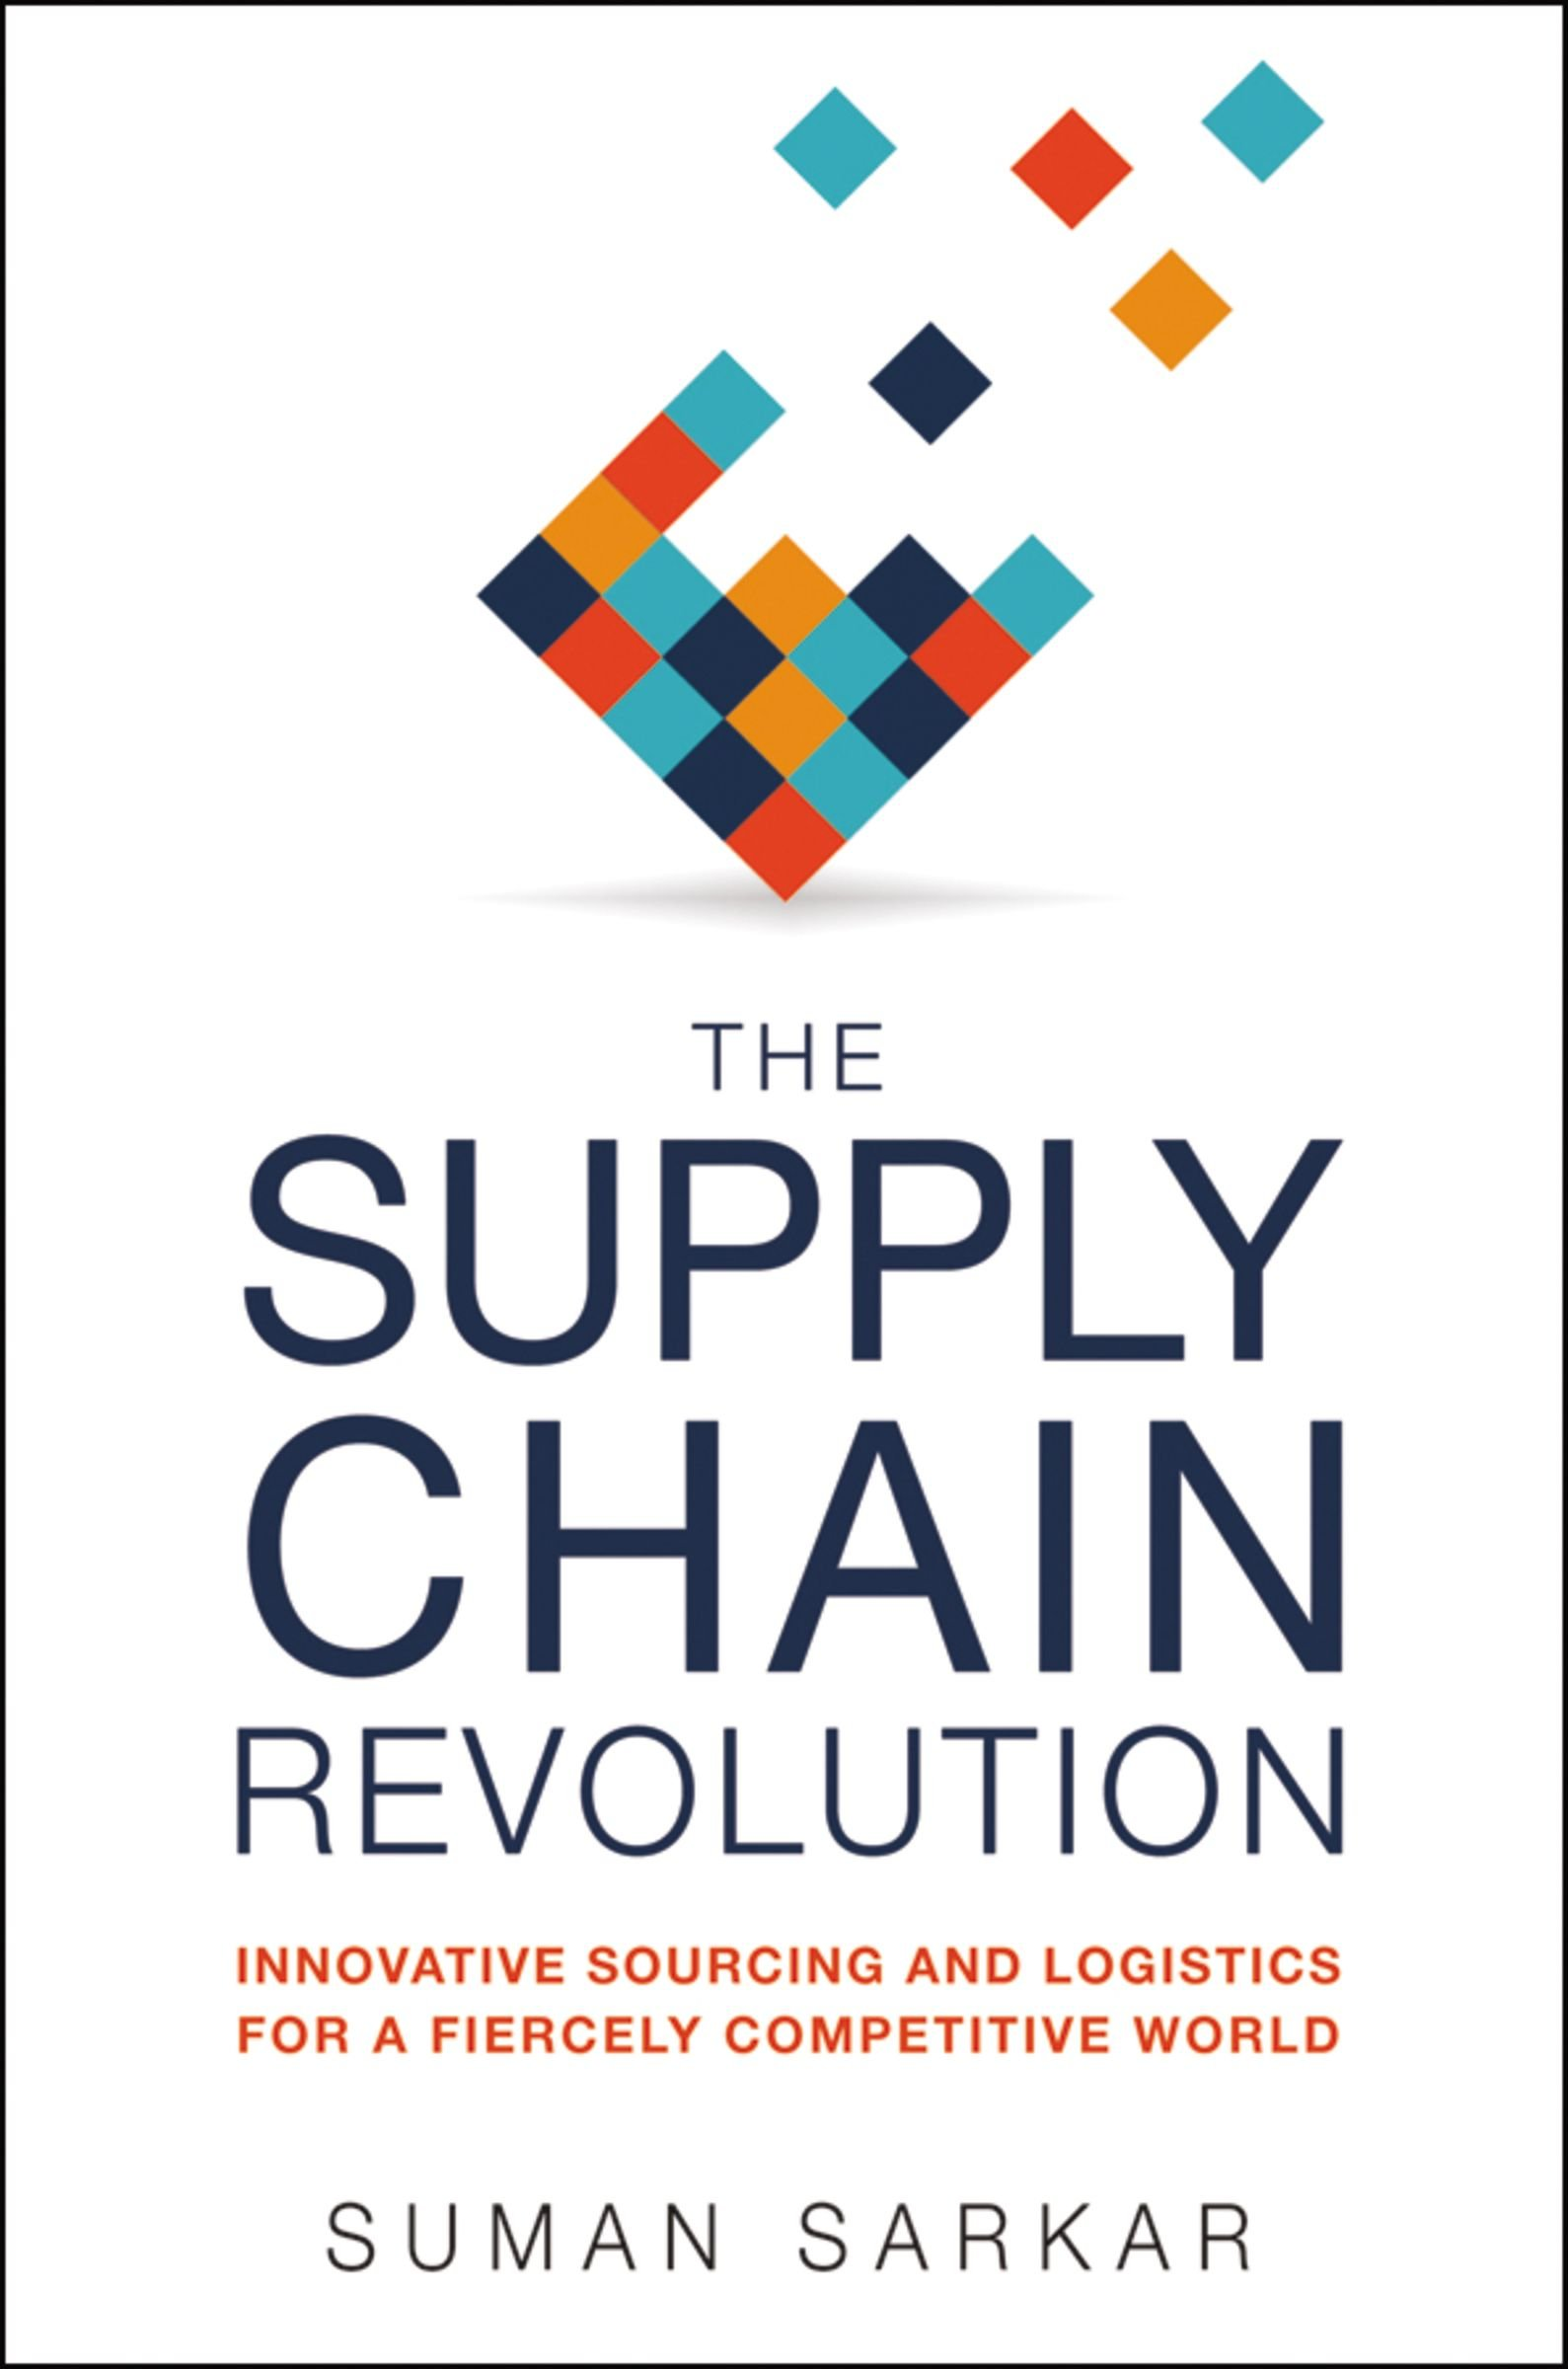 The Supply Chain Revolution by Suman Sarkar